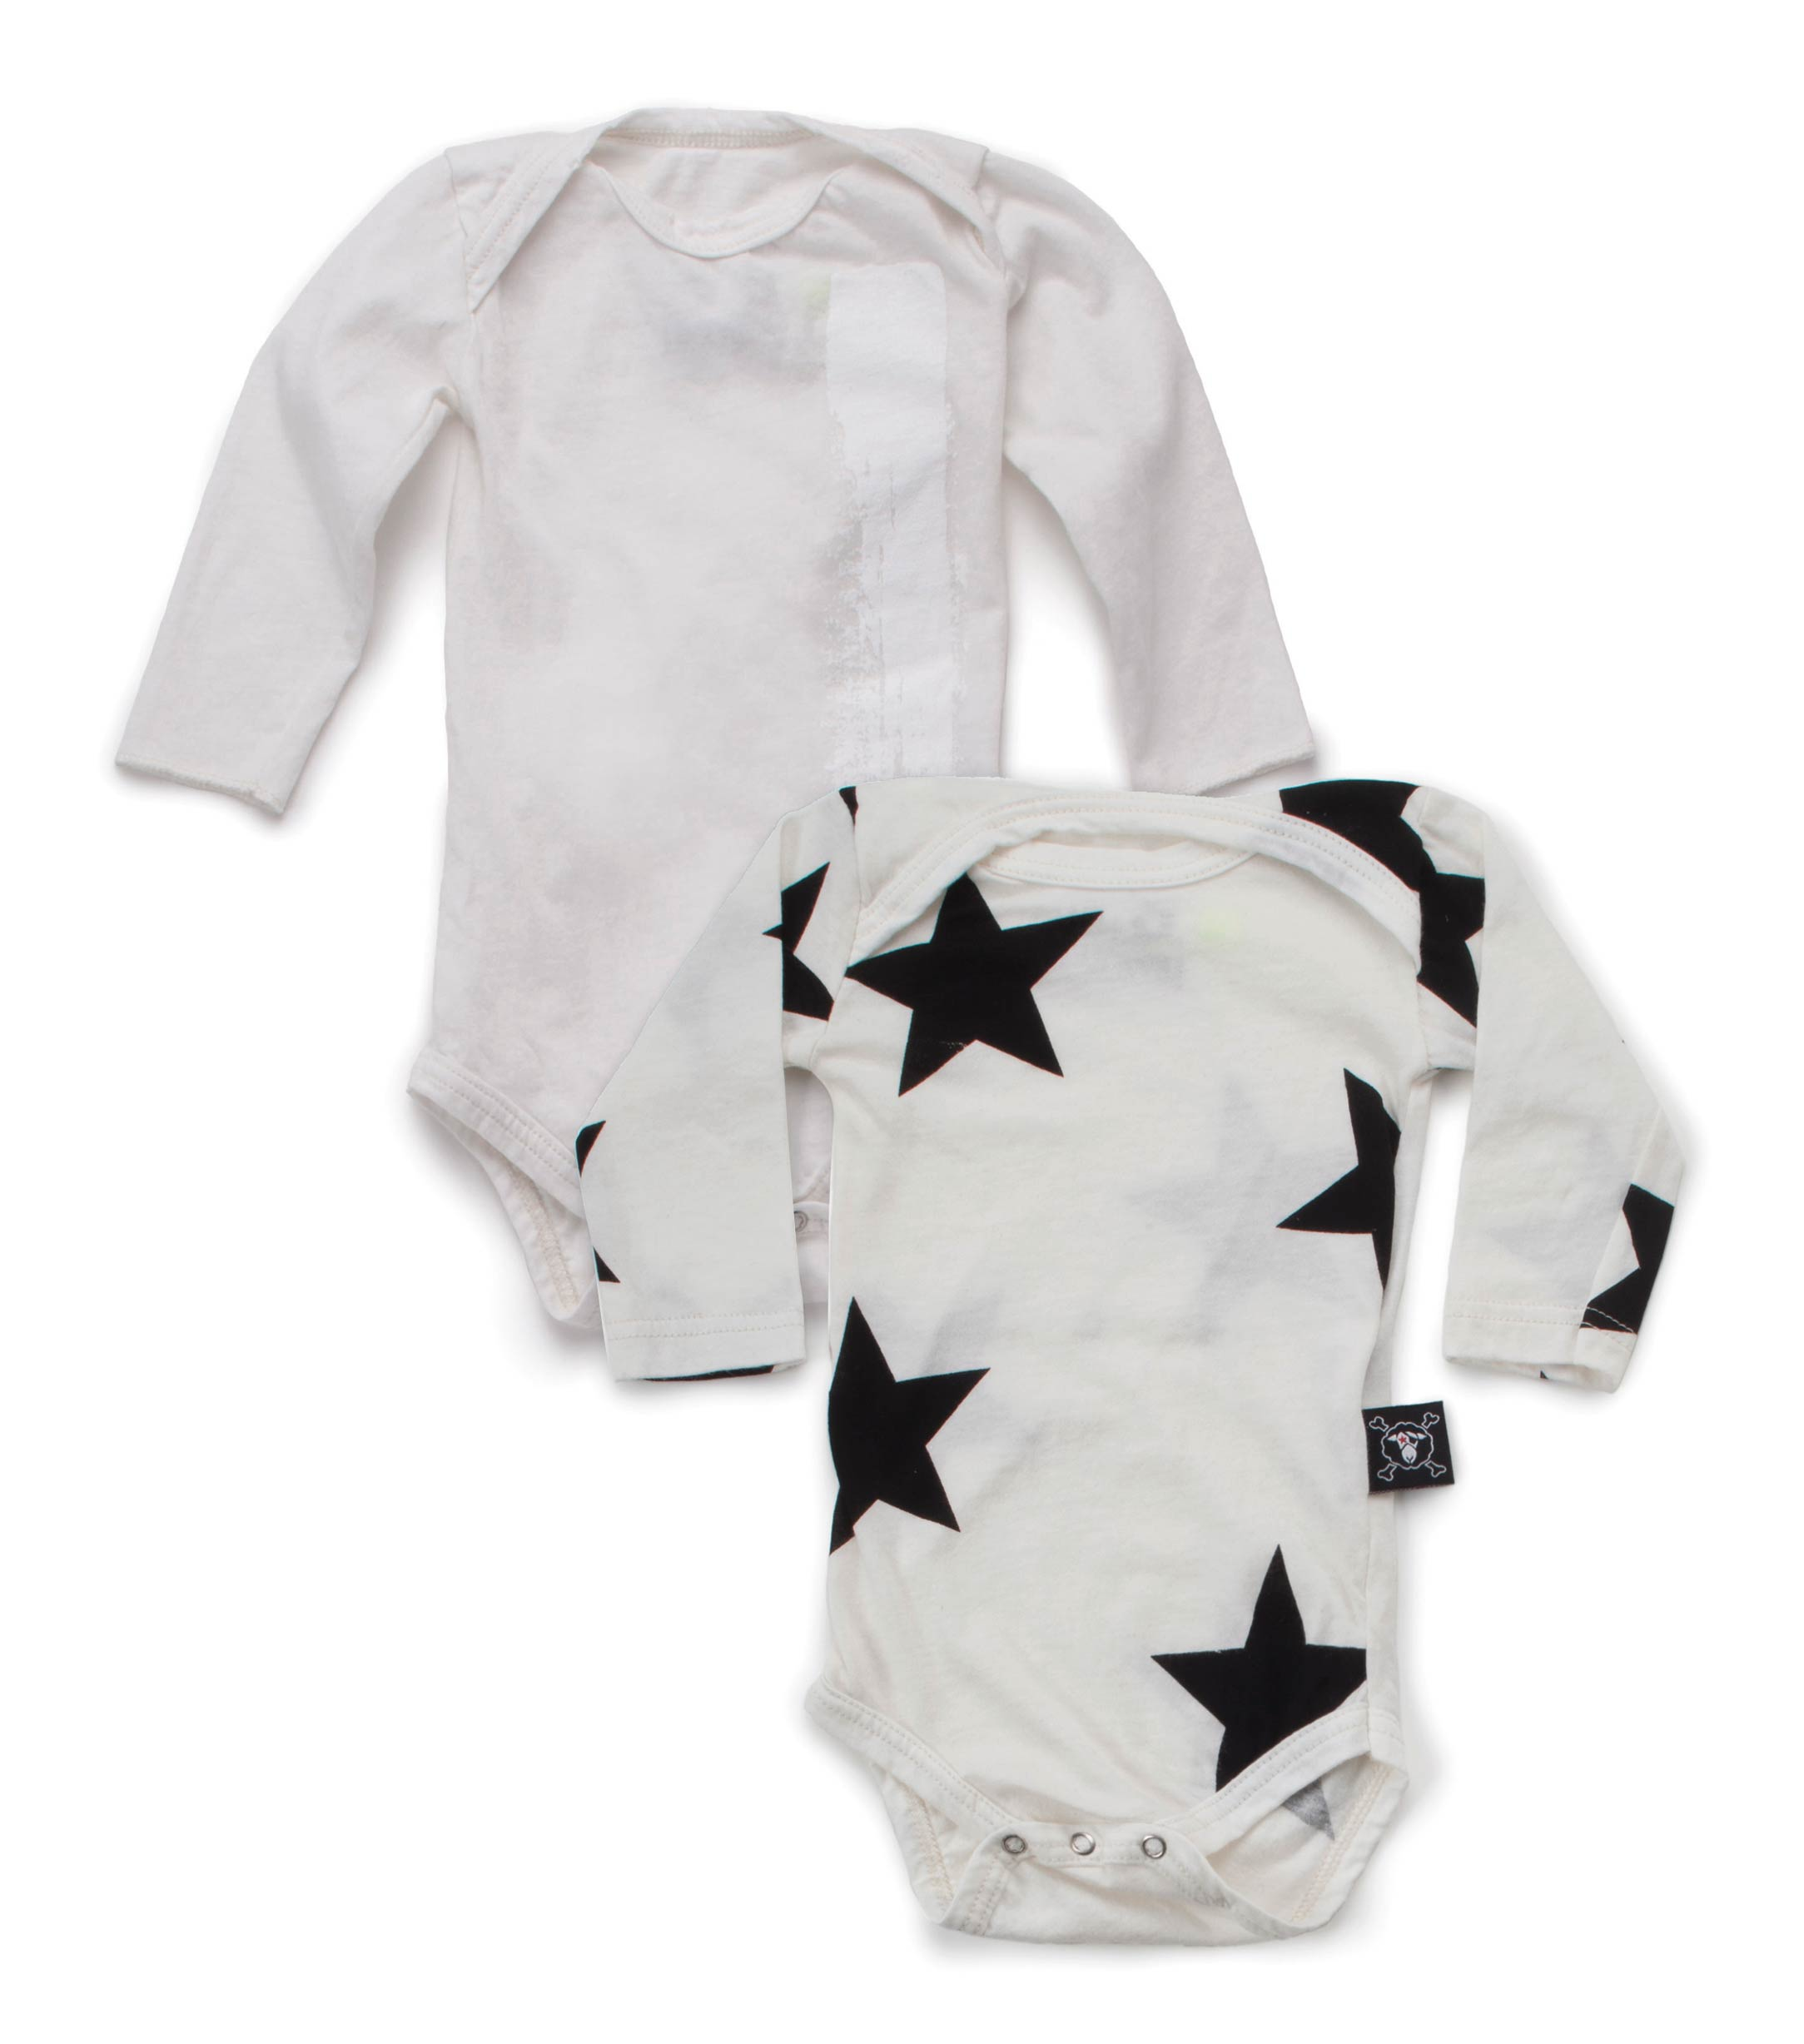 1ae6e8eac5d3 12-18m white onesie set gift box for kids - NUNUNU WORLD